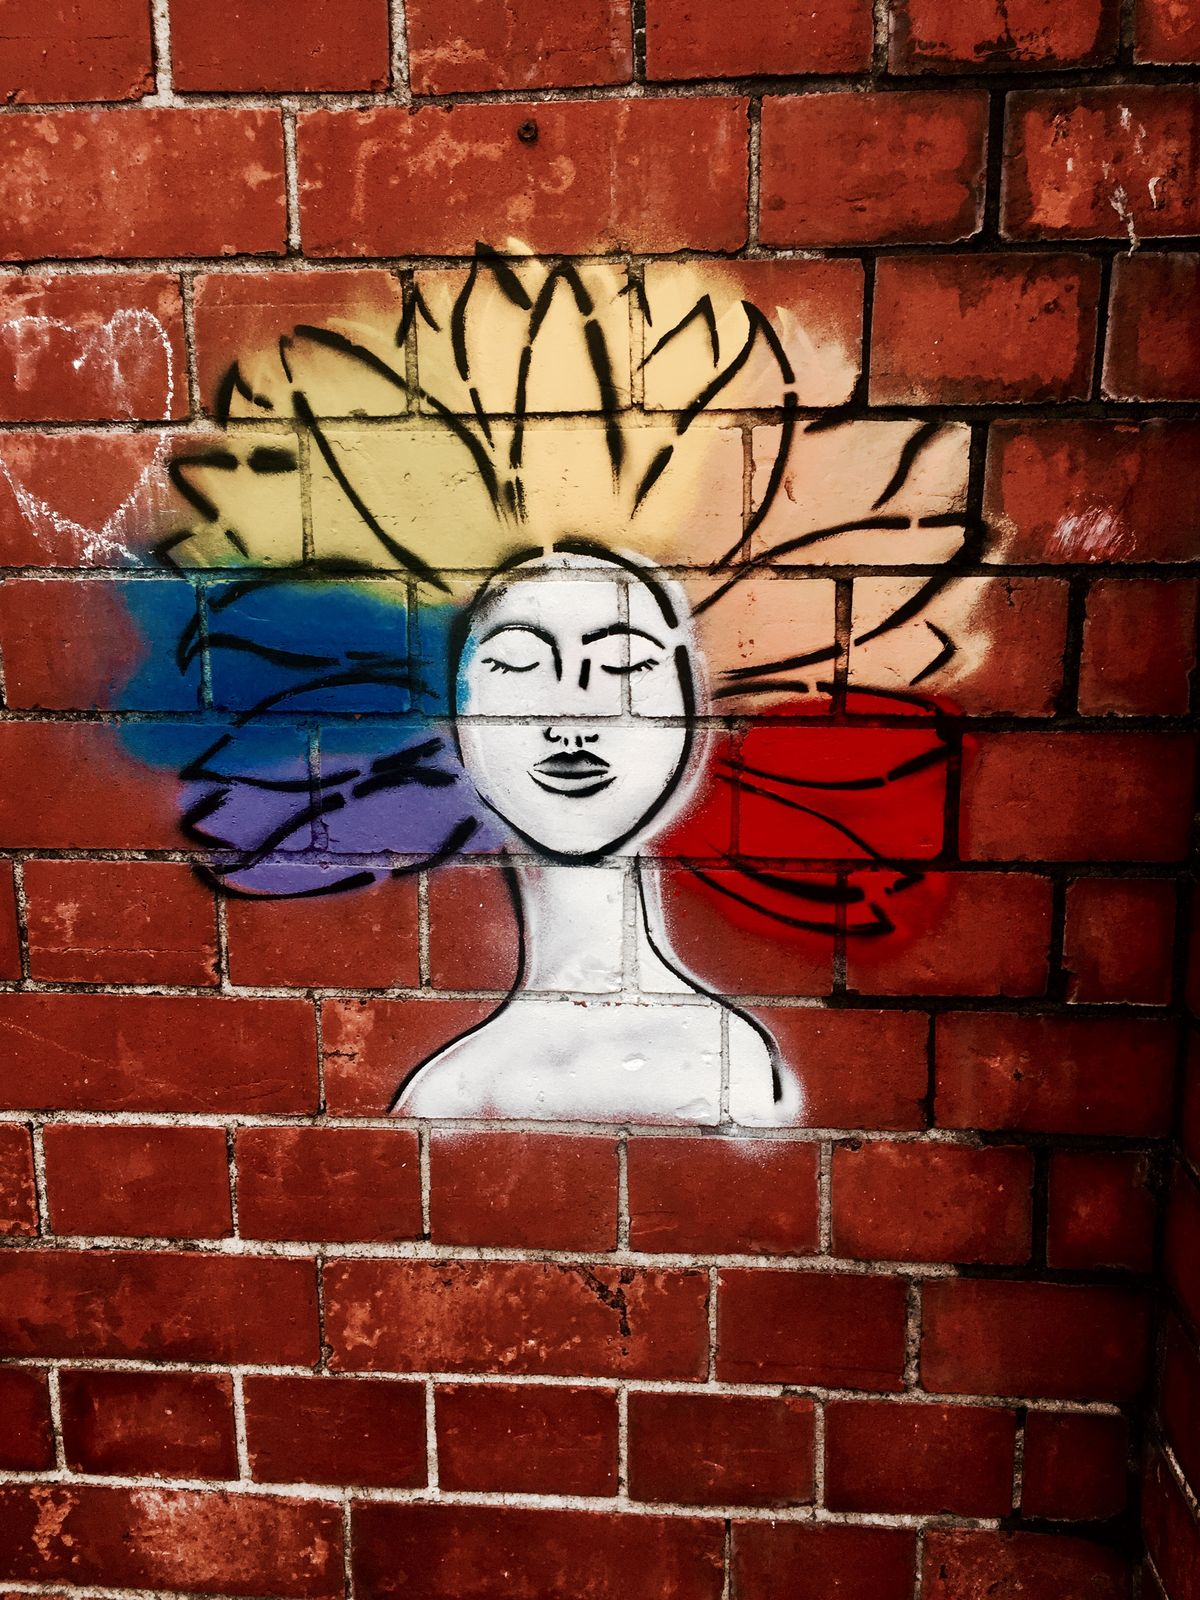 Why Graffiti Is An Important Art Form